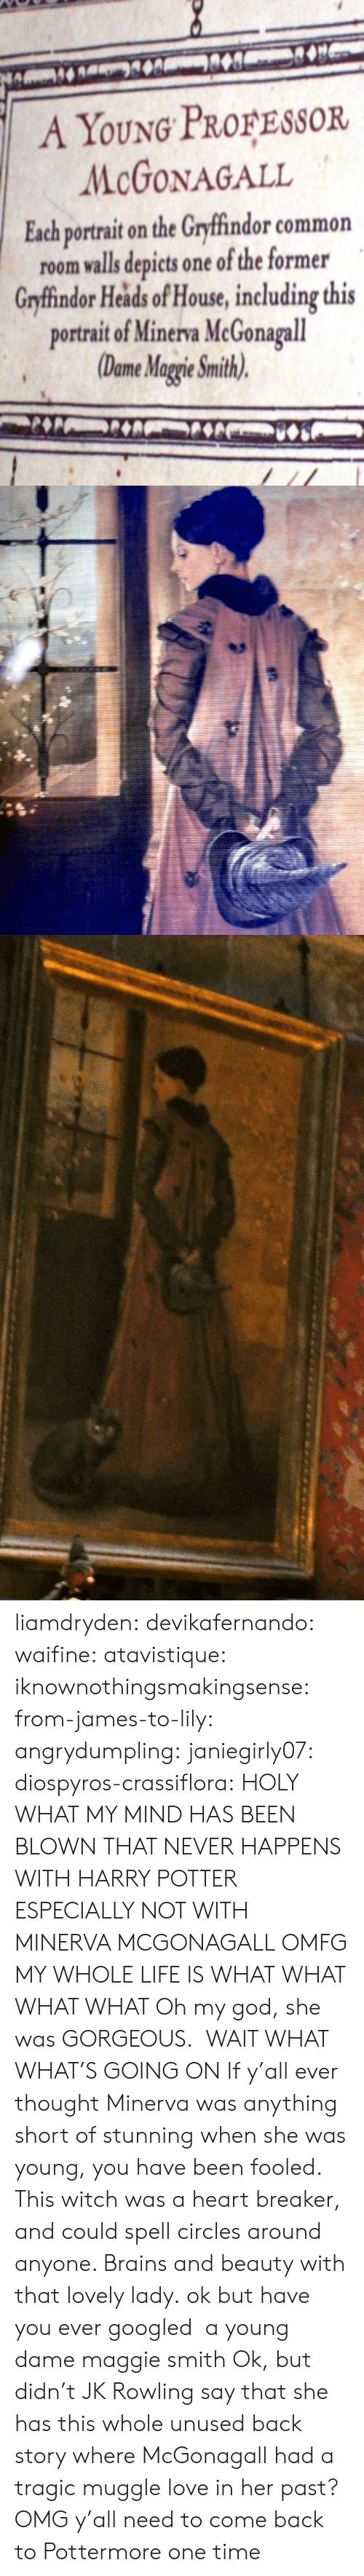 God She: A YOUNG PROFESSOR  McGONAGALL  Each portrait on the Gryffindor common  room valls depicts one of the former  Grfindor Heads of House, including this  portrait of Minerva McGonagall  Dome Magie Smith) liamdryden:  devikafernando:  waifine:  atavistique:  iknownothingsmakingsense:  from-james-to-lily:  angrydumpling:  janiegirly07:  diospyros-crassiflora:  HOLY WHAT MY MIND HAS BEEN BLOWN THAT NEVER HAPPENS WITH HARRY POTTER ESPECIALLY NOT WITH MINERVA MCGONAGALL OMFG MY WHOLE LIFE IS WHAT  WHAT WHAT WHAT  Oh my god, she was GORGEOUS.  WAIT WHAT WHAT'S GOING ON  If y'all ever thought Minerva was anything short of stunning when she was young, you have been fooled. This witch was a heart breaker, and could spell circles around anyone. Brains and beauty with that lovely lady.  ok but have you ever googled a young dame maggie smith  Ok, but didn't JK Rowling say that she has this whole unused back story where McGonagall had a tragic muggle love in her past?  OMG  y'all need to come back to Pottermore one time